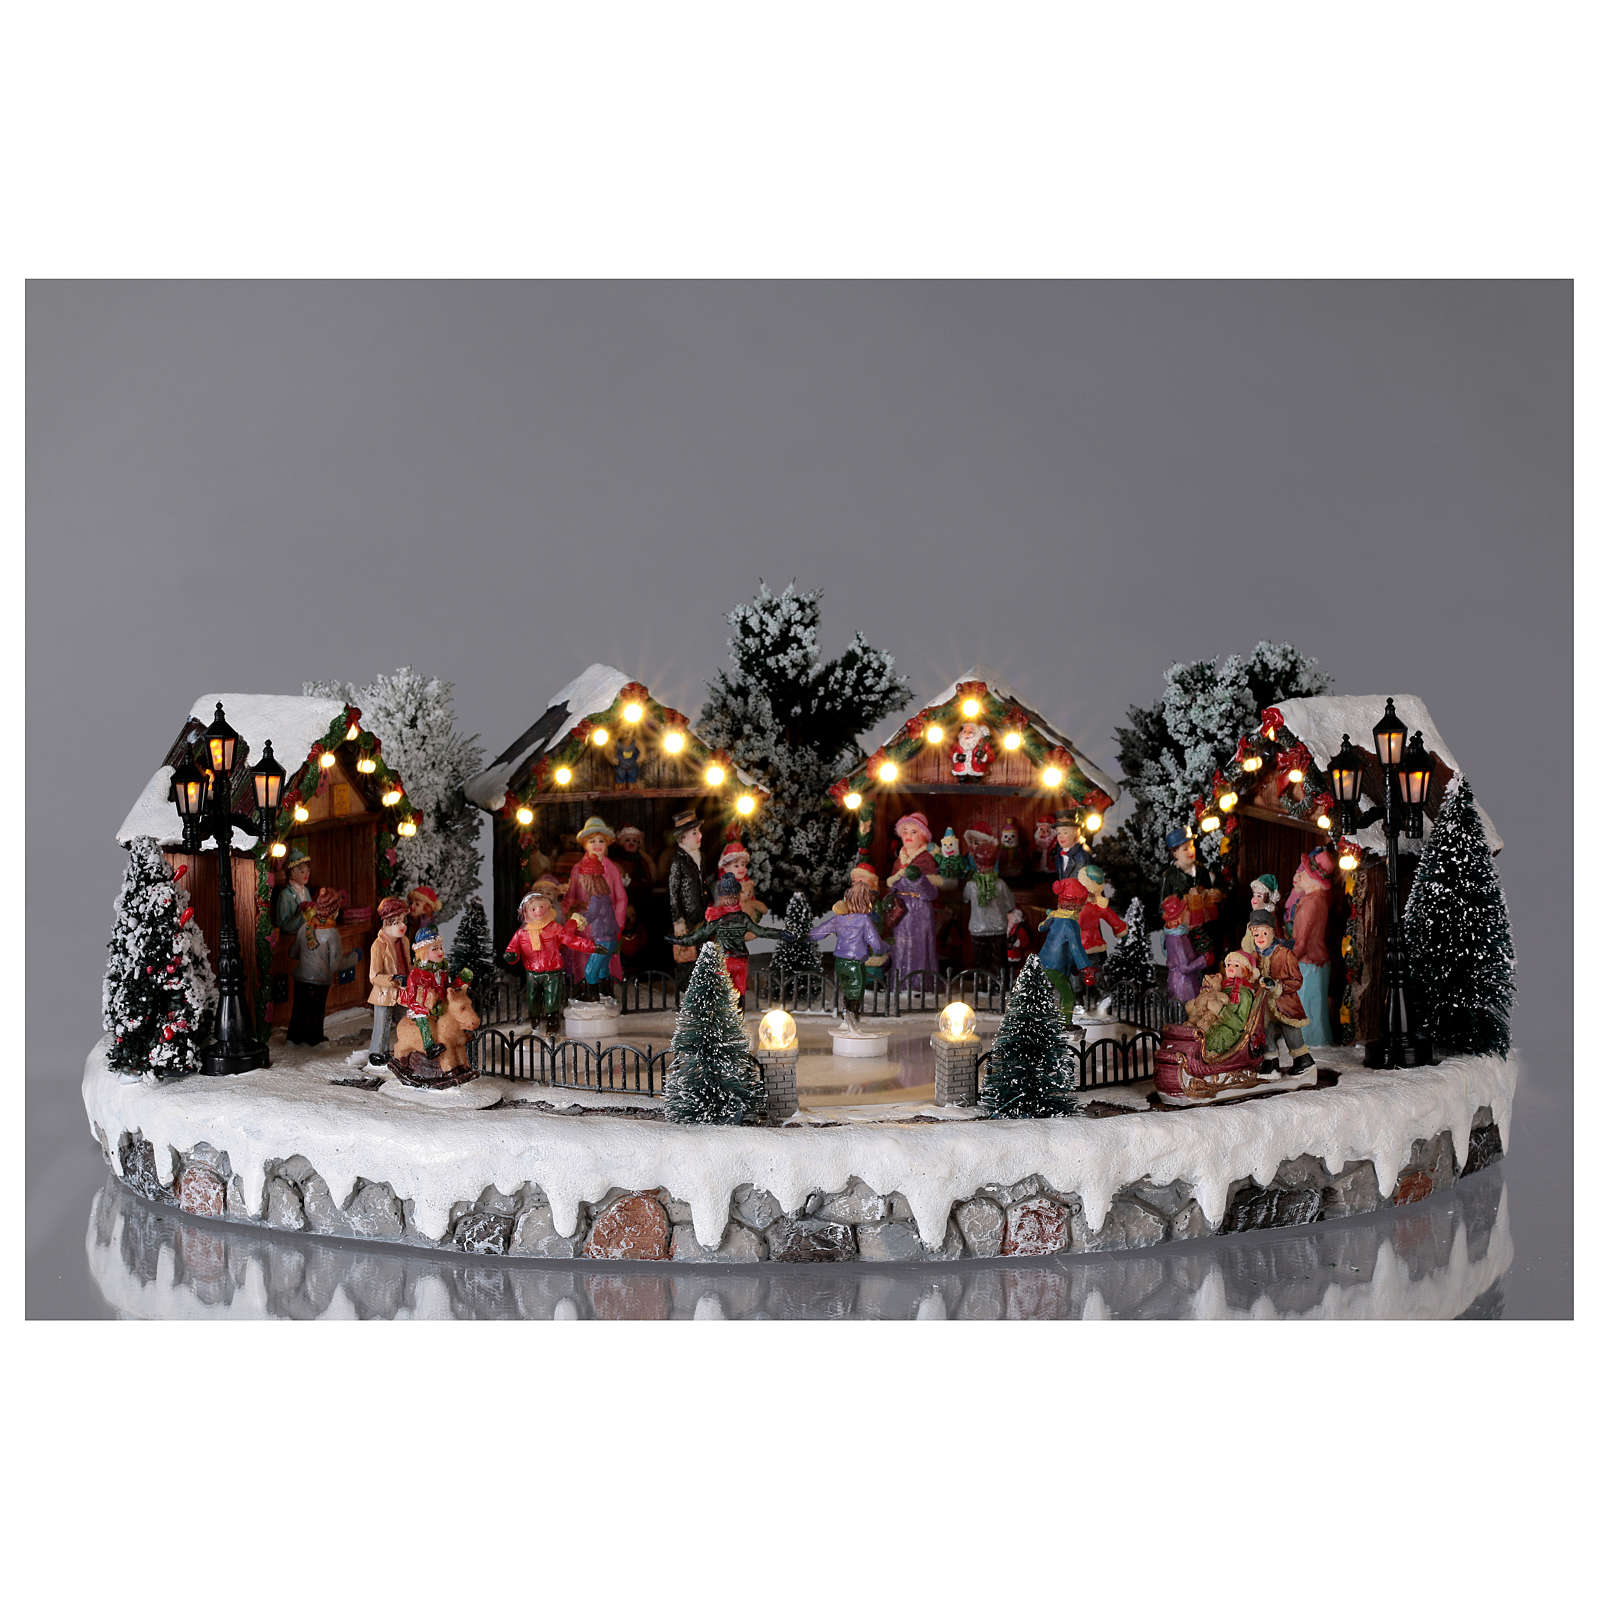 Christmas Village.Christmas Village With Animated Ice Skaters And Music 20x45x35 Cm